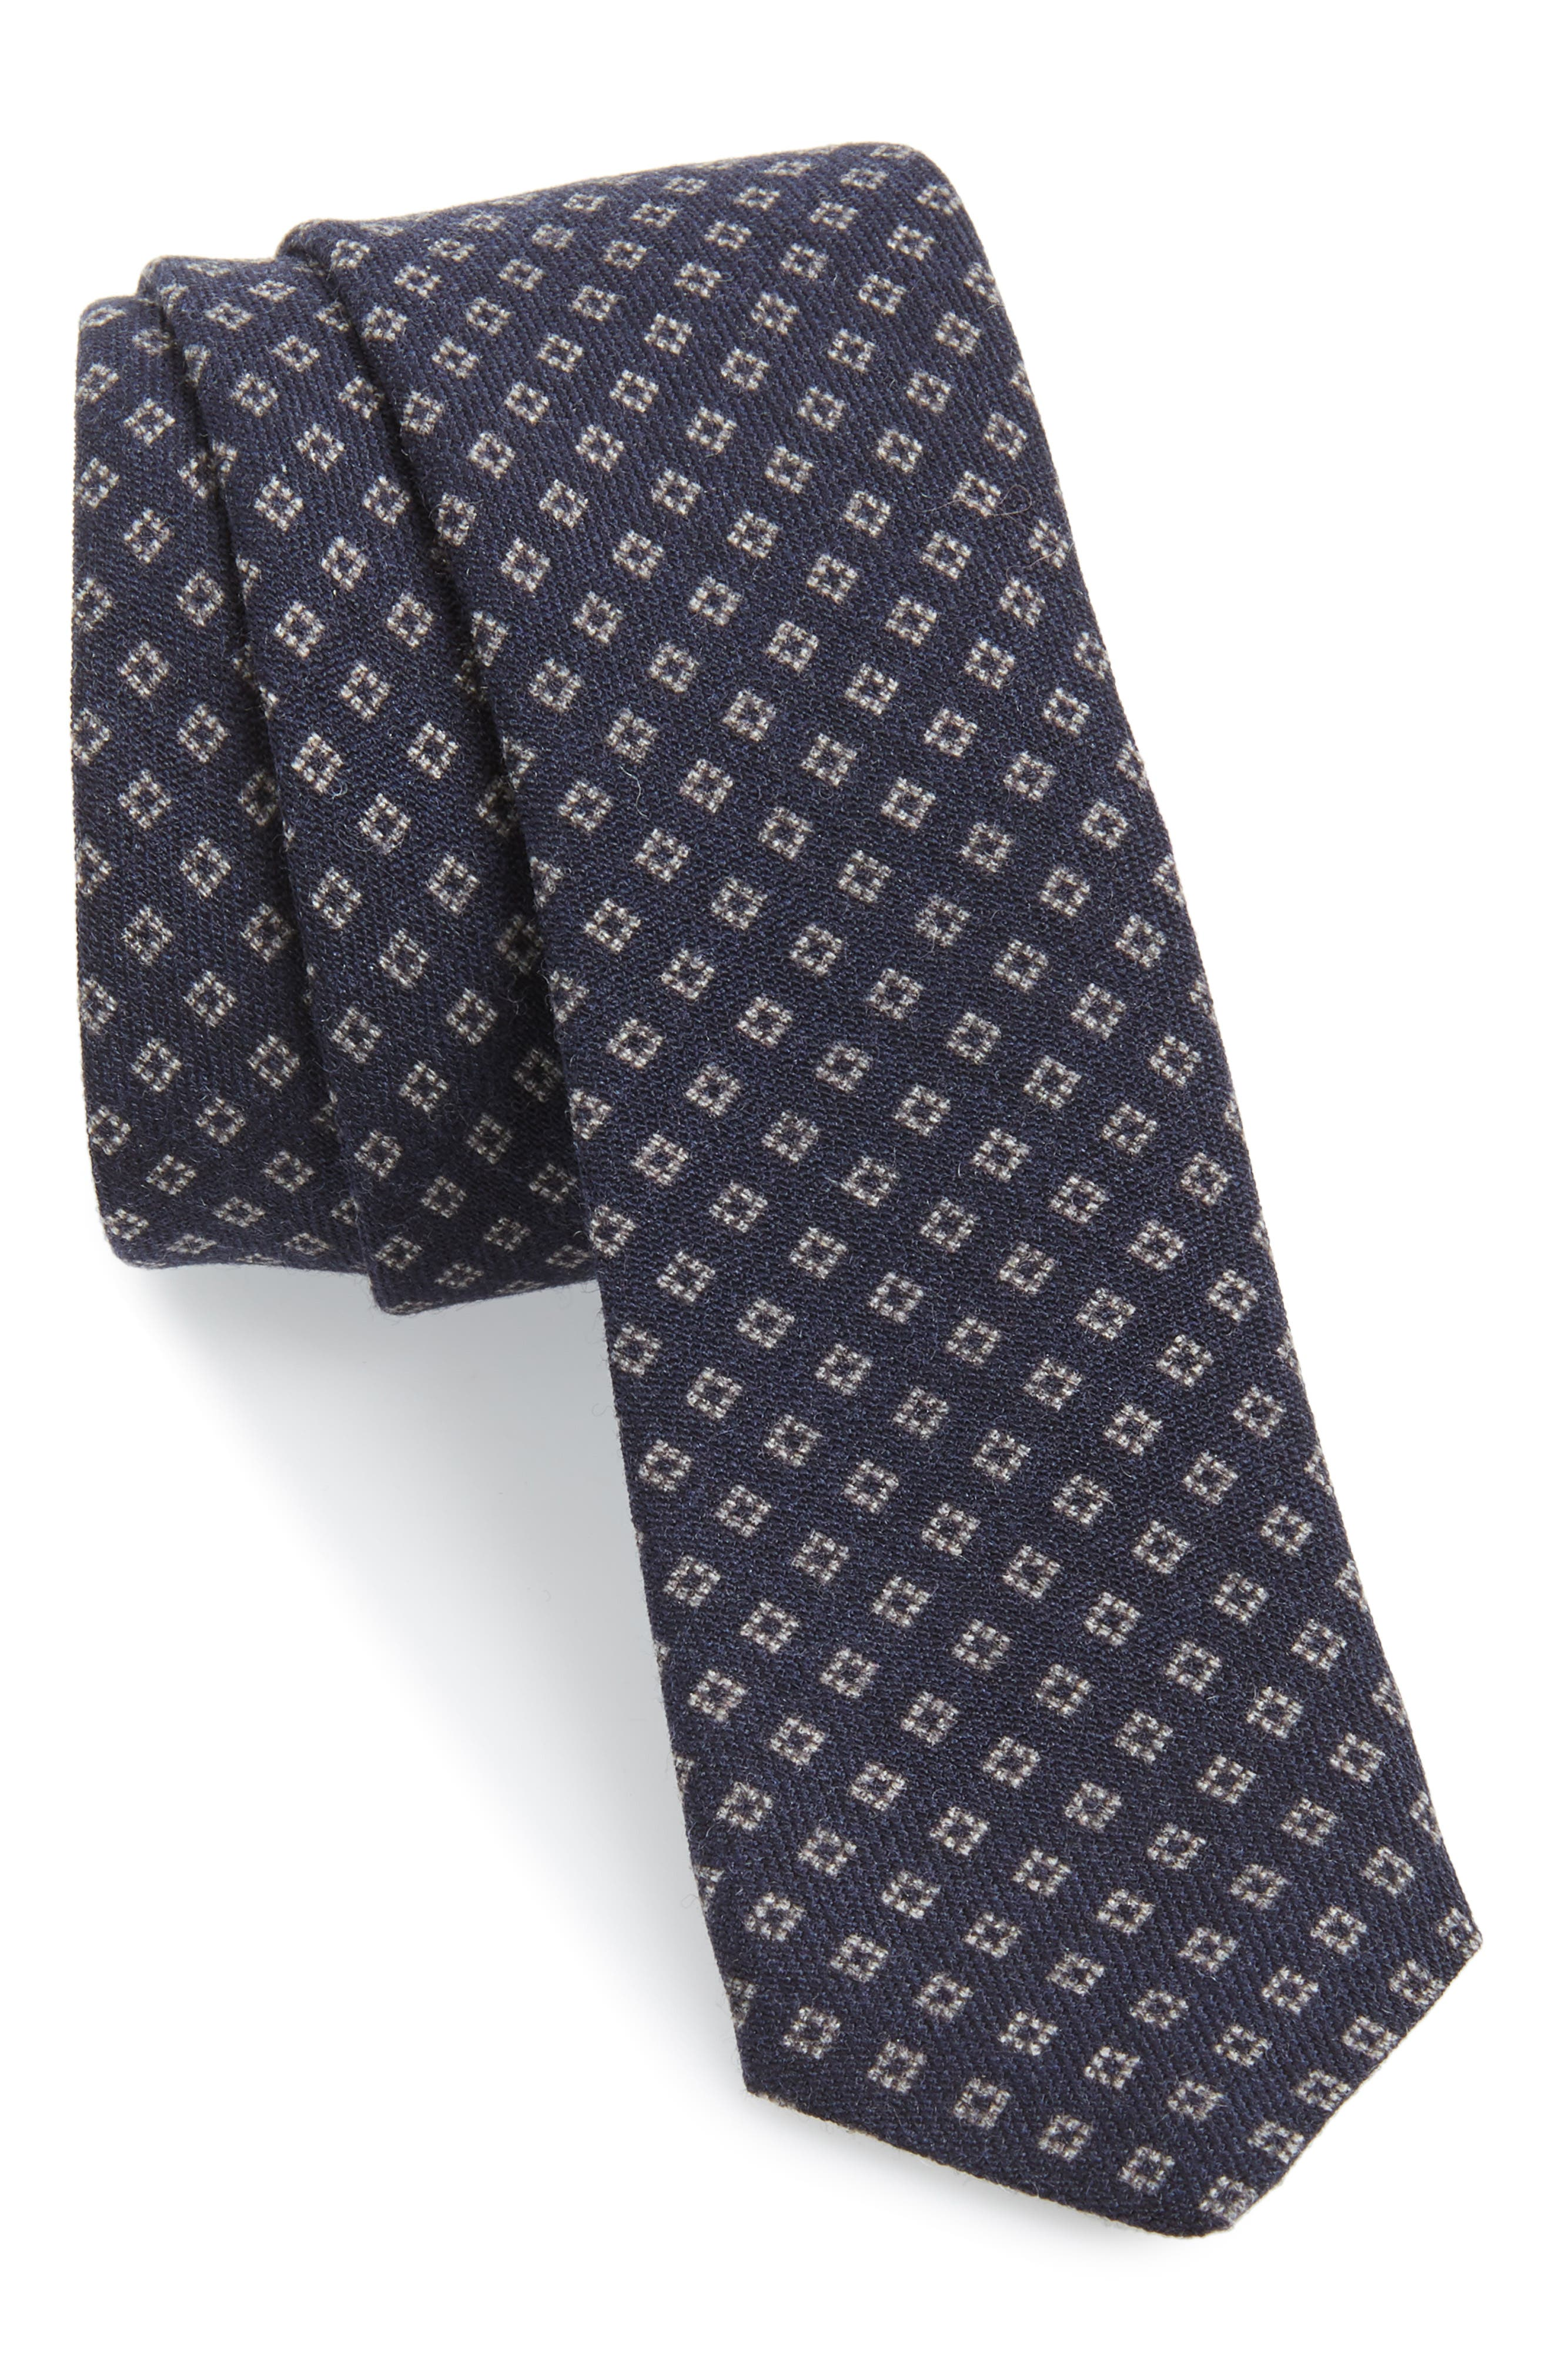 Neat Wool Skinny Tie,                             Main thumbnail 1, color,                             NAVY